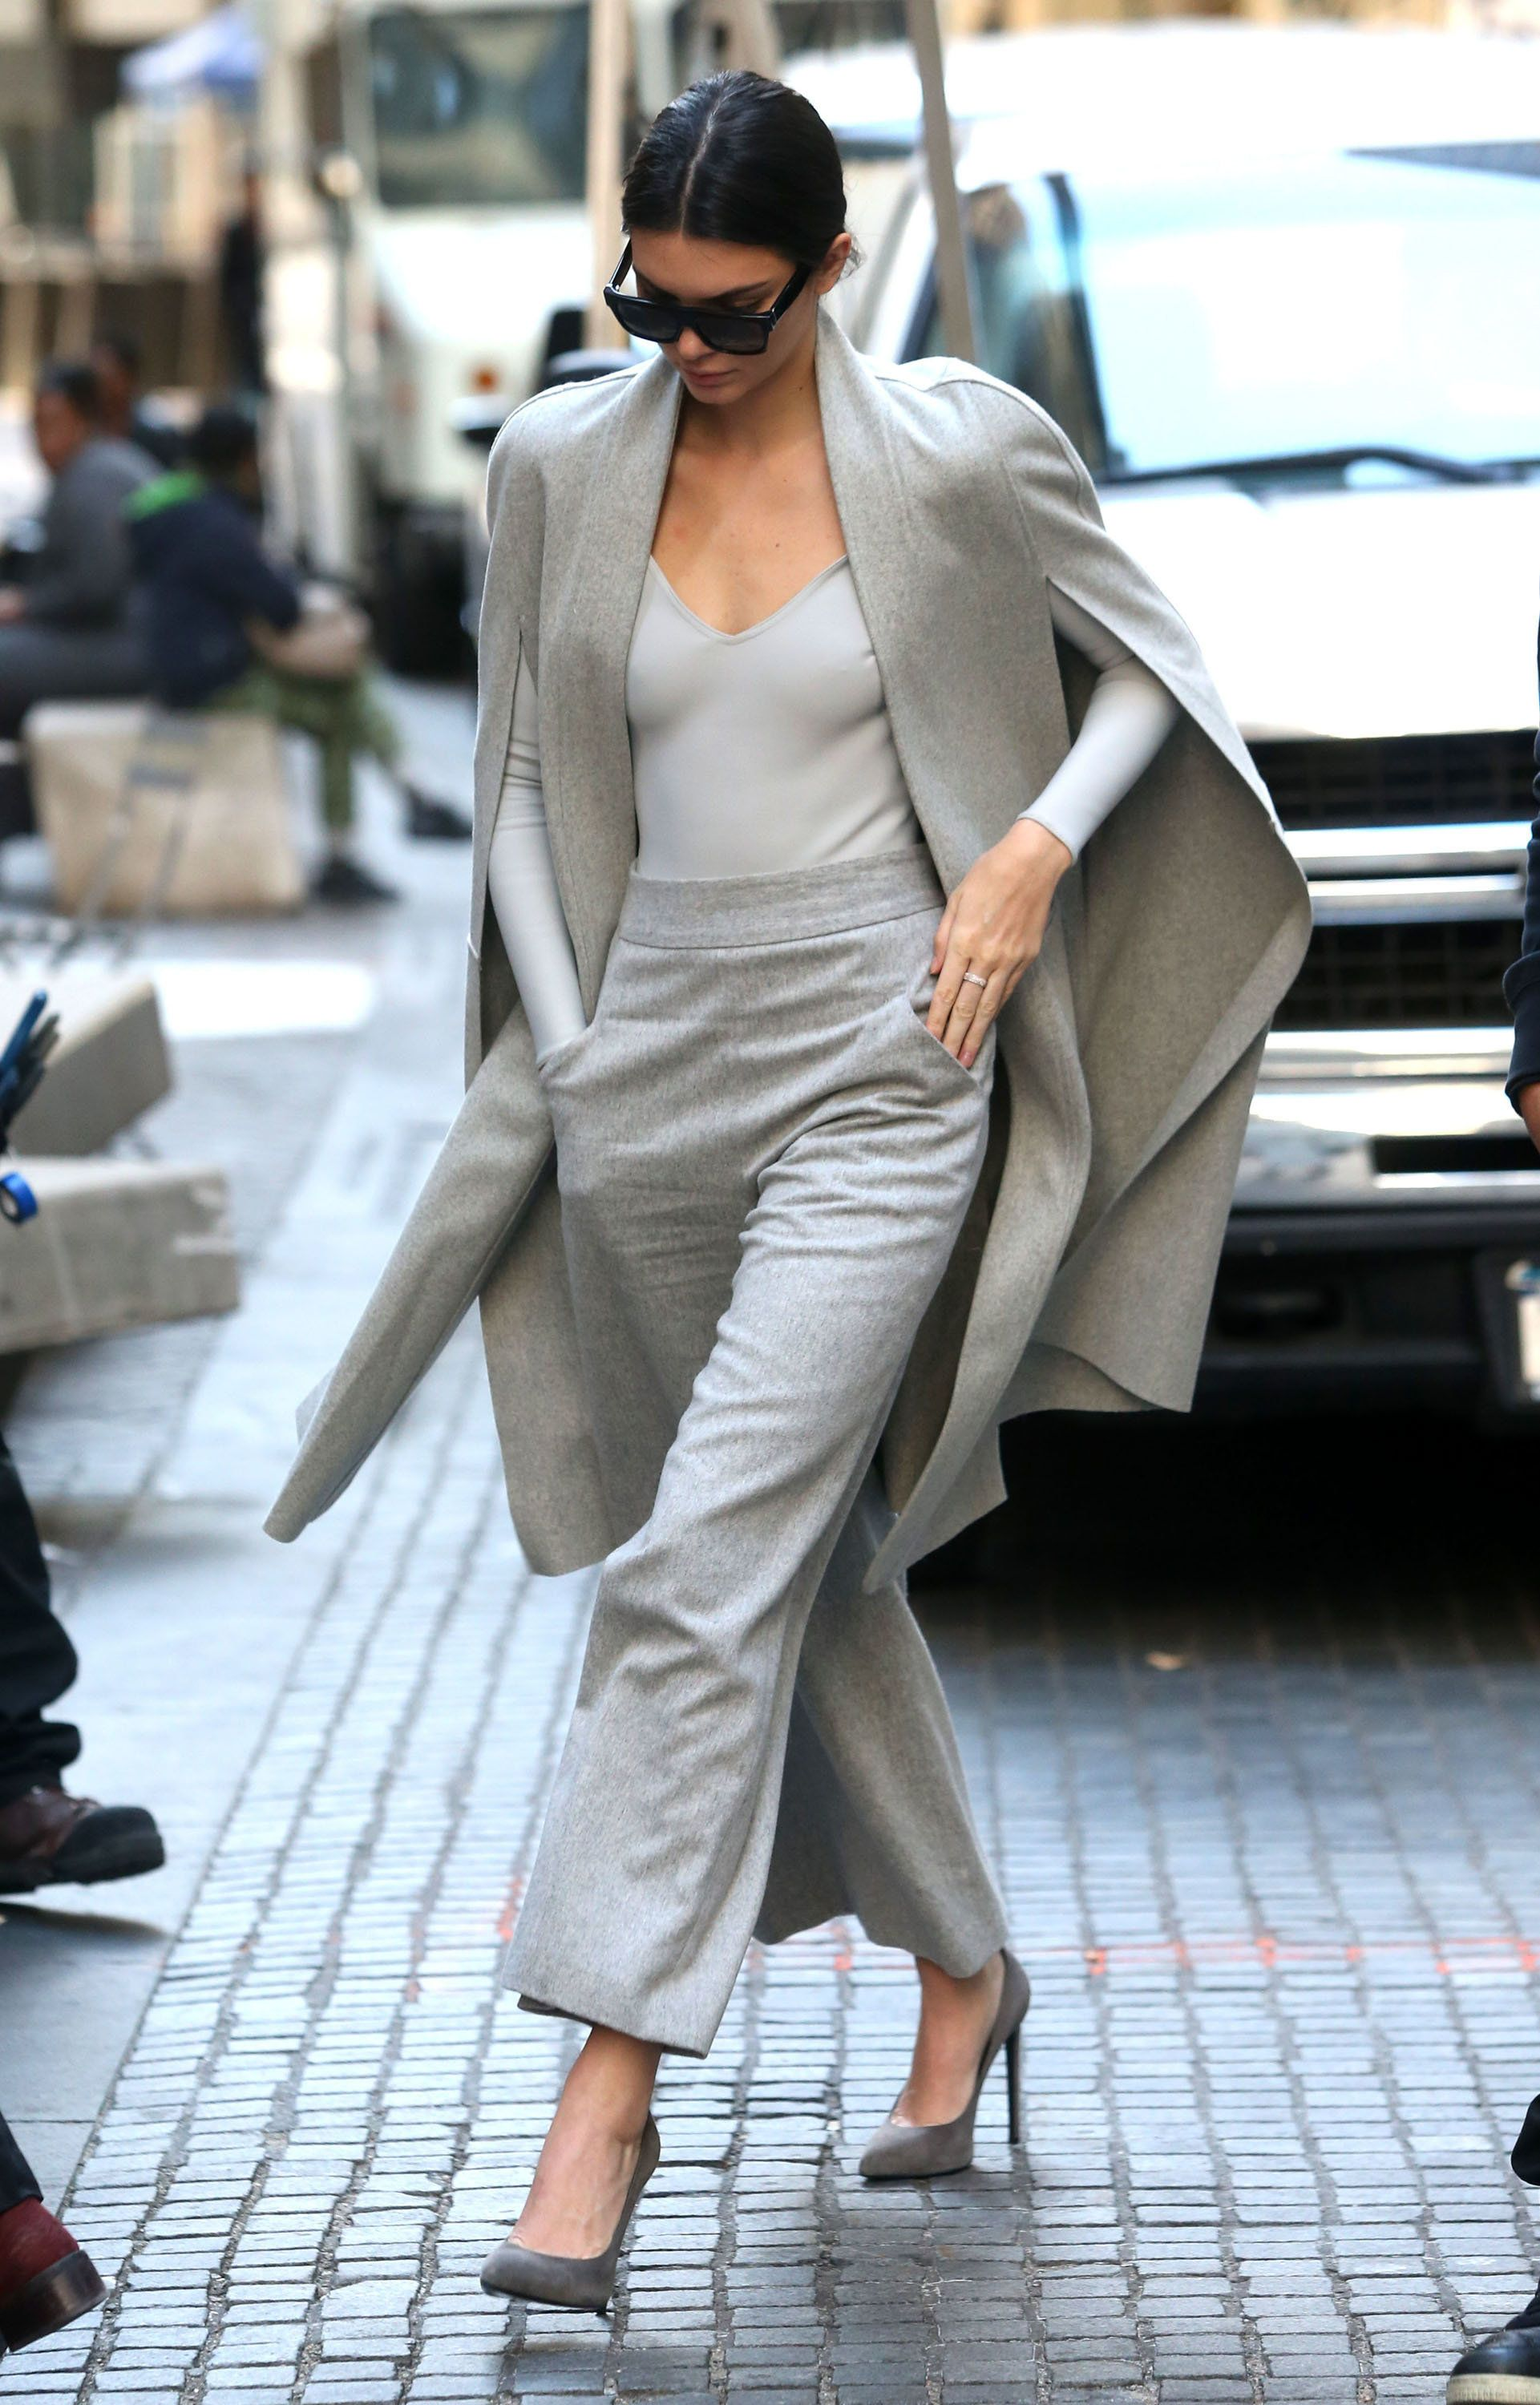 51883874 Reality star and model Kendall Jenner spotted out and about in New York City, New York on October 20, 2015. Kendall who has been claiming to be bullied by fellow models is now having to deal with one of those models, Madison Stubbington, claiming that she never said anything about Kendall but was just in the wrong place at the wrong time and it was another model who said rude comments to Kendall. FameFlynet, Inc - Beverly Hills, CA, USA - +1 (310) 505-9876